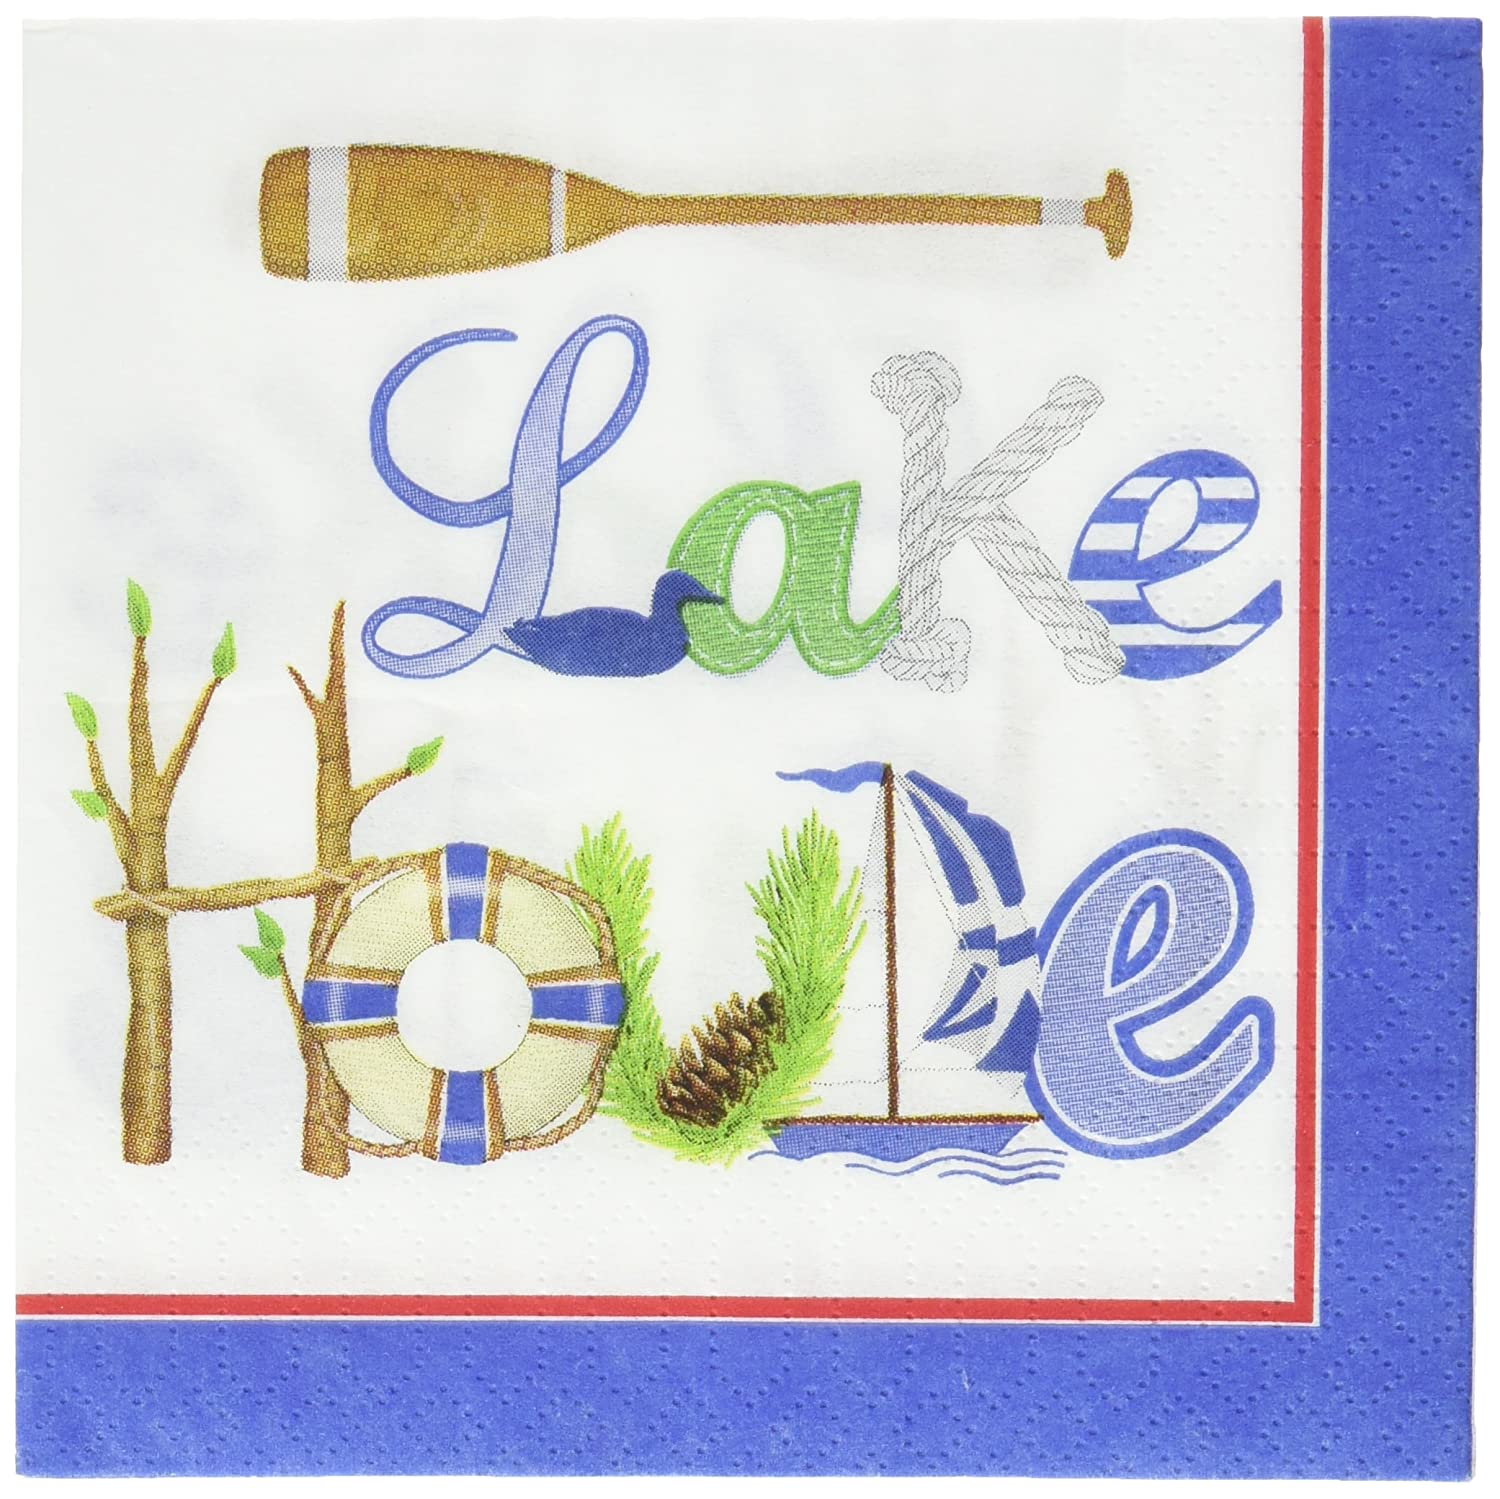 Paperproducts Design Lake House Paper Beverage Cocktail Napkin 5 by 5-Inch 1251064